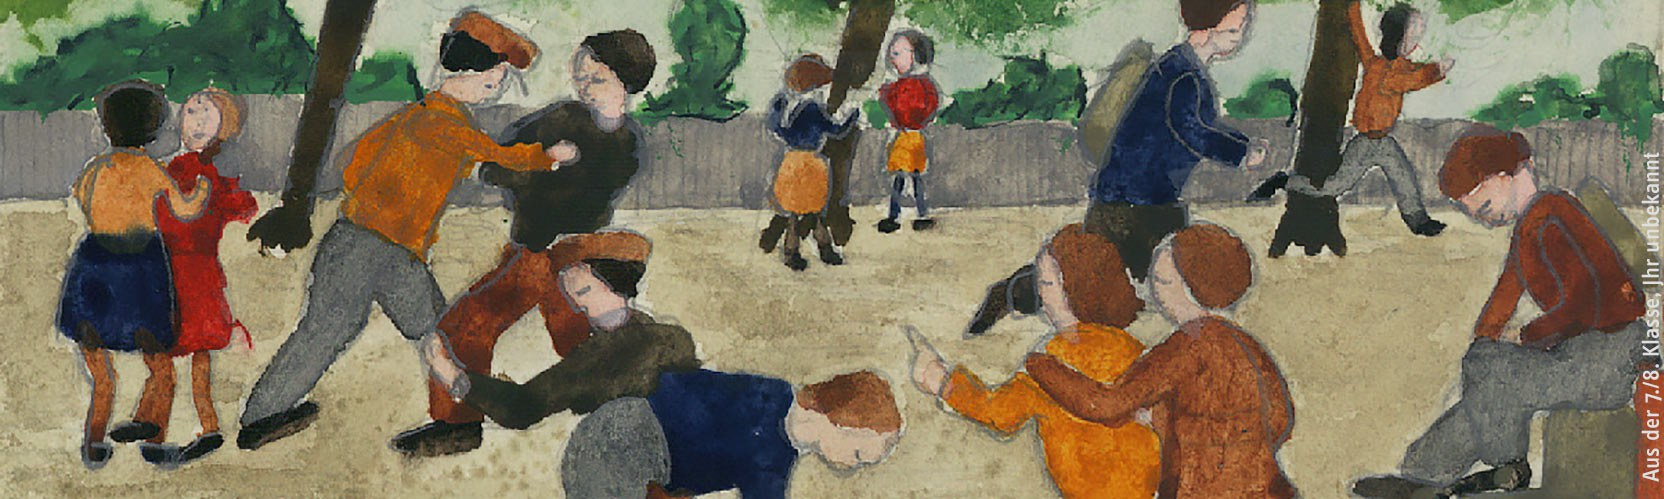 Student's piainting of the school yard scene